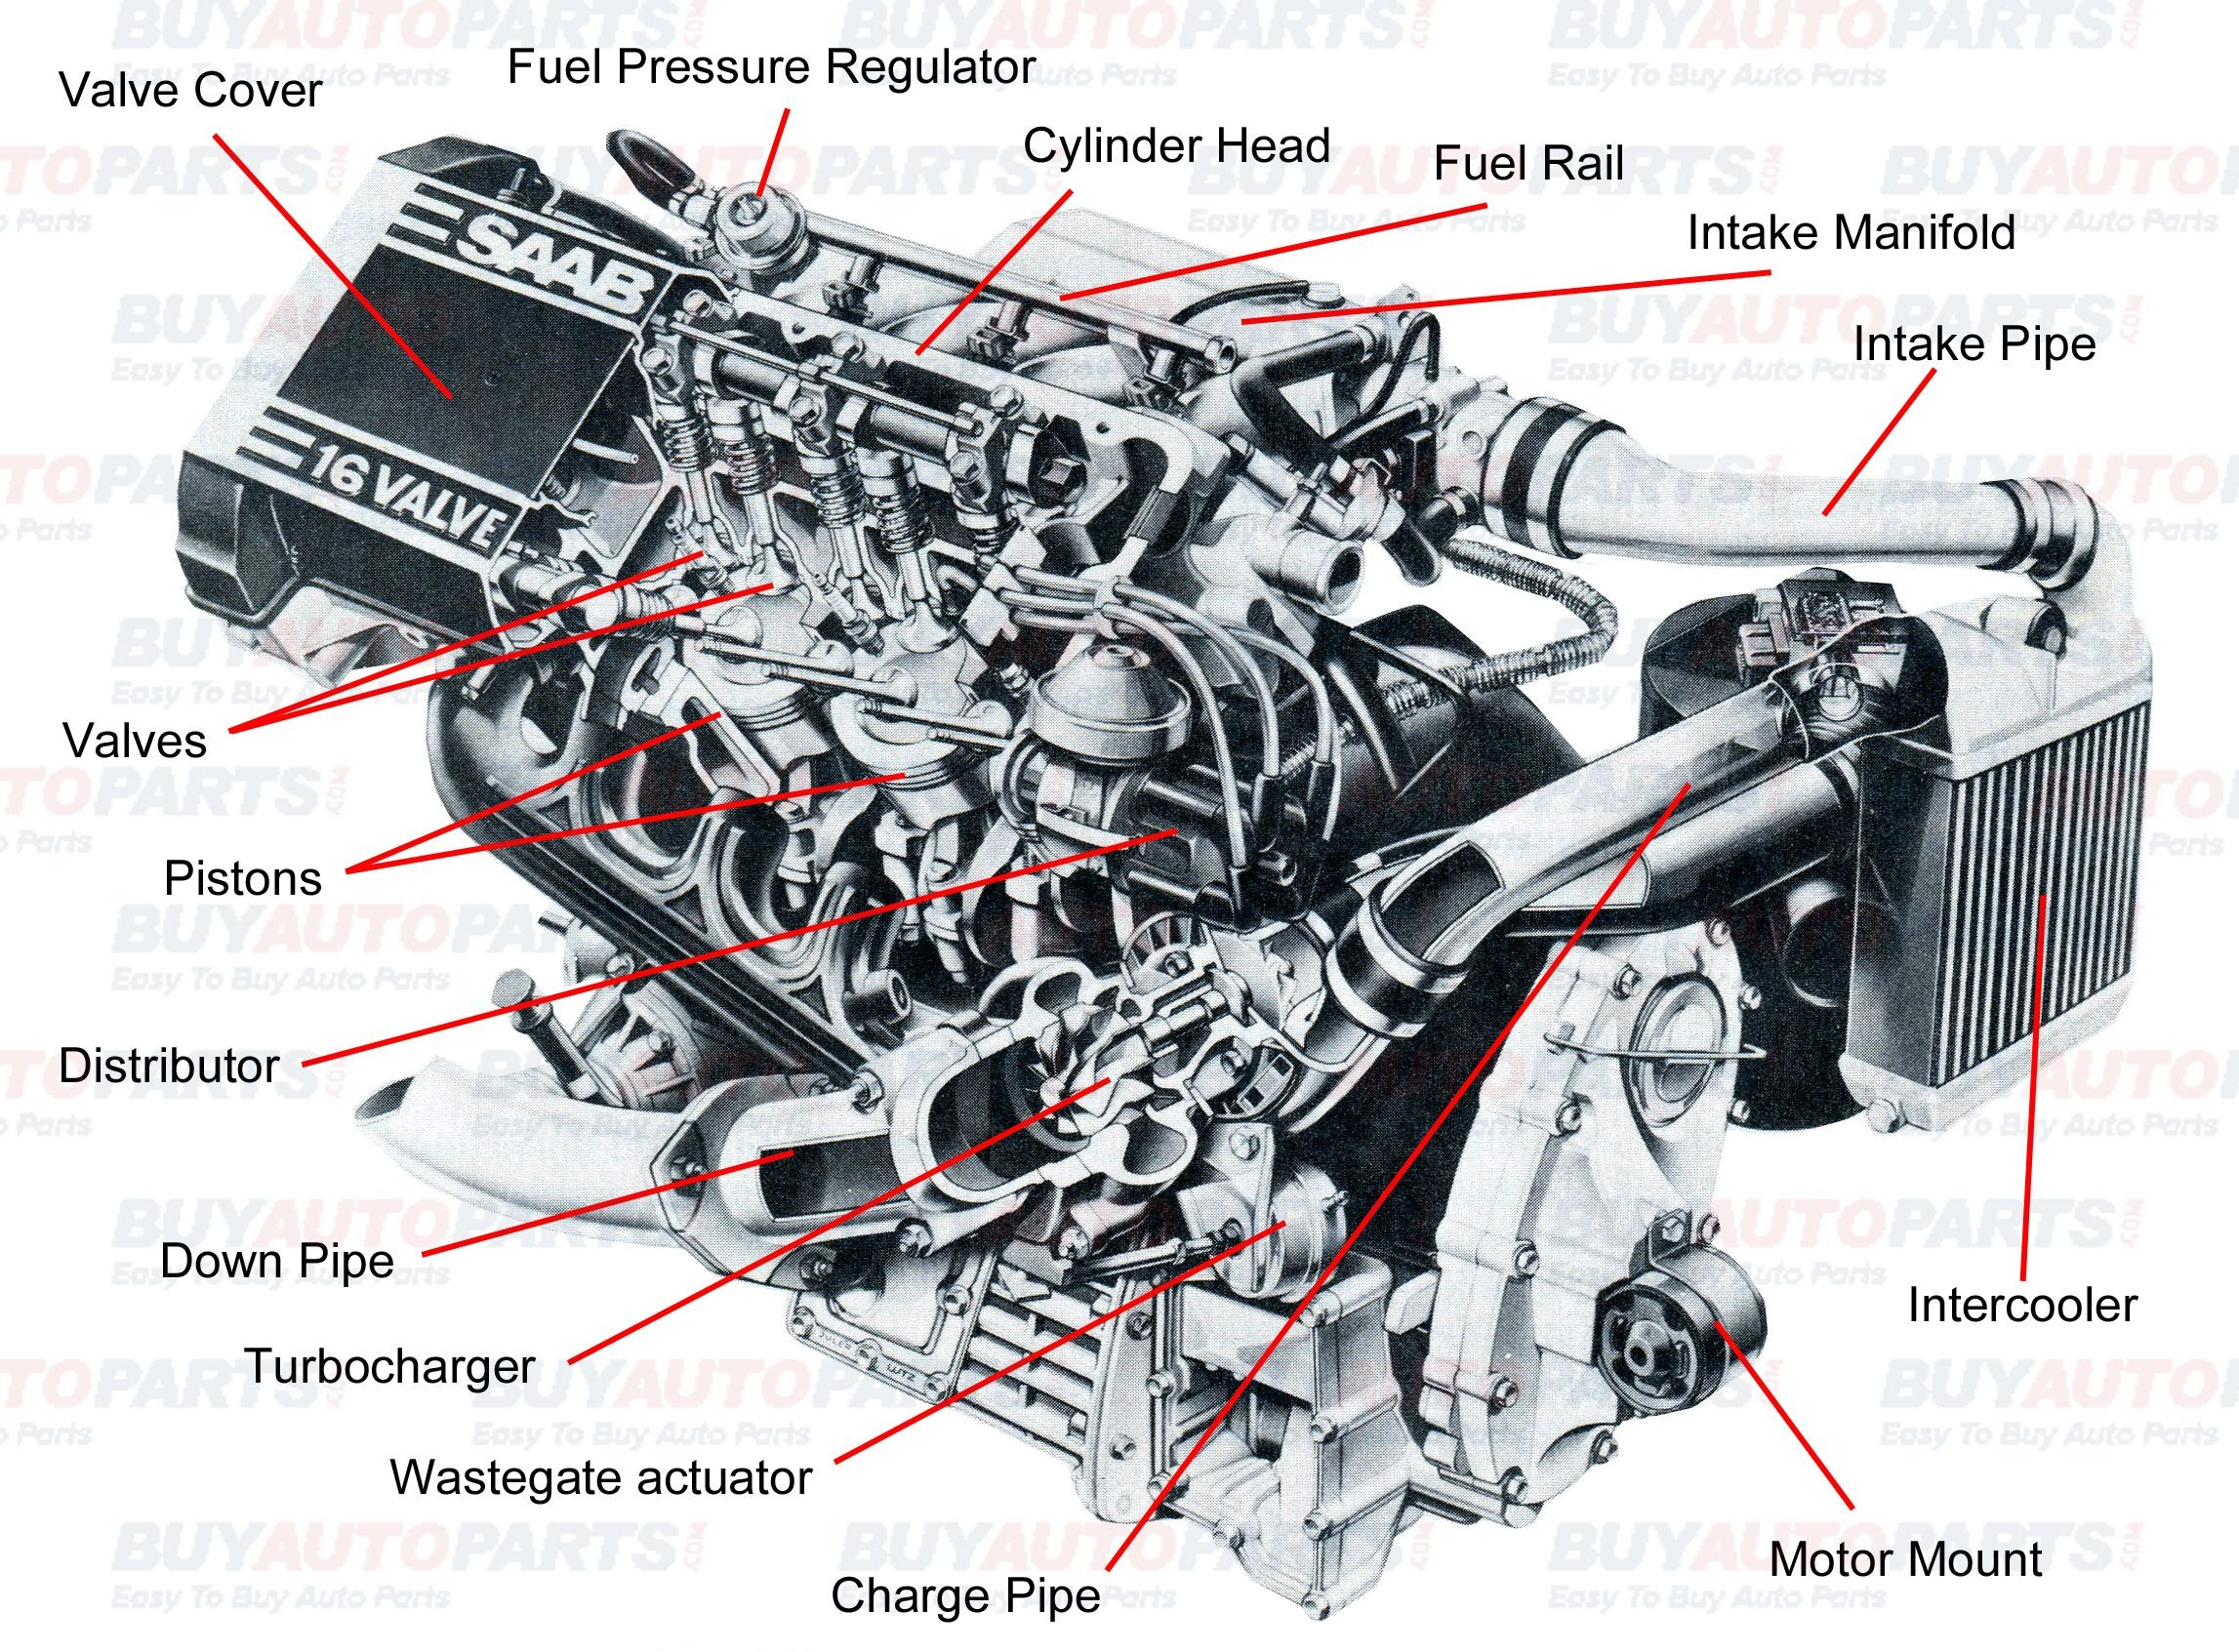 Diagram Of Car Engine Cooling System Pin by Jimmiejanet Testellamwfz On What Does An Engine with Turbo Of Diagram Of Car Engine Cooling System